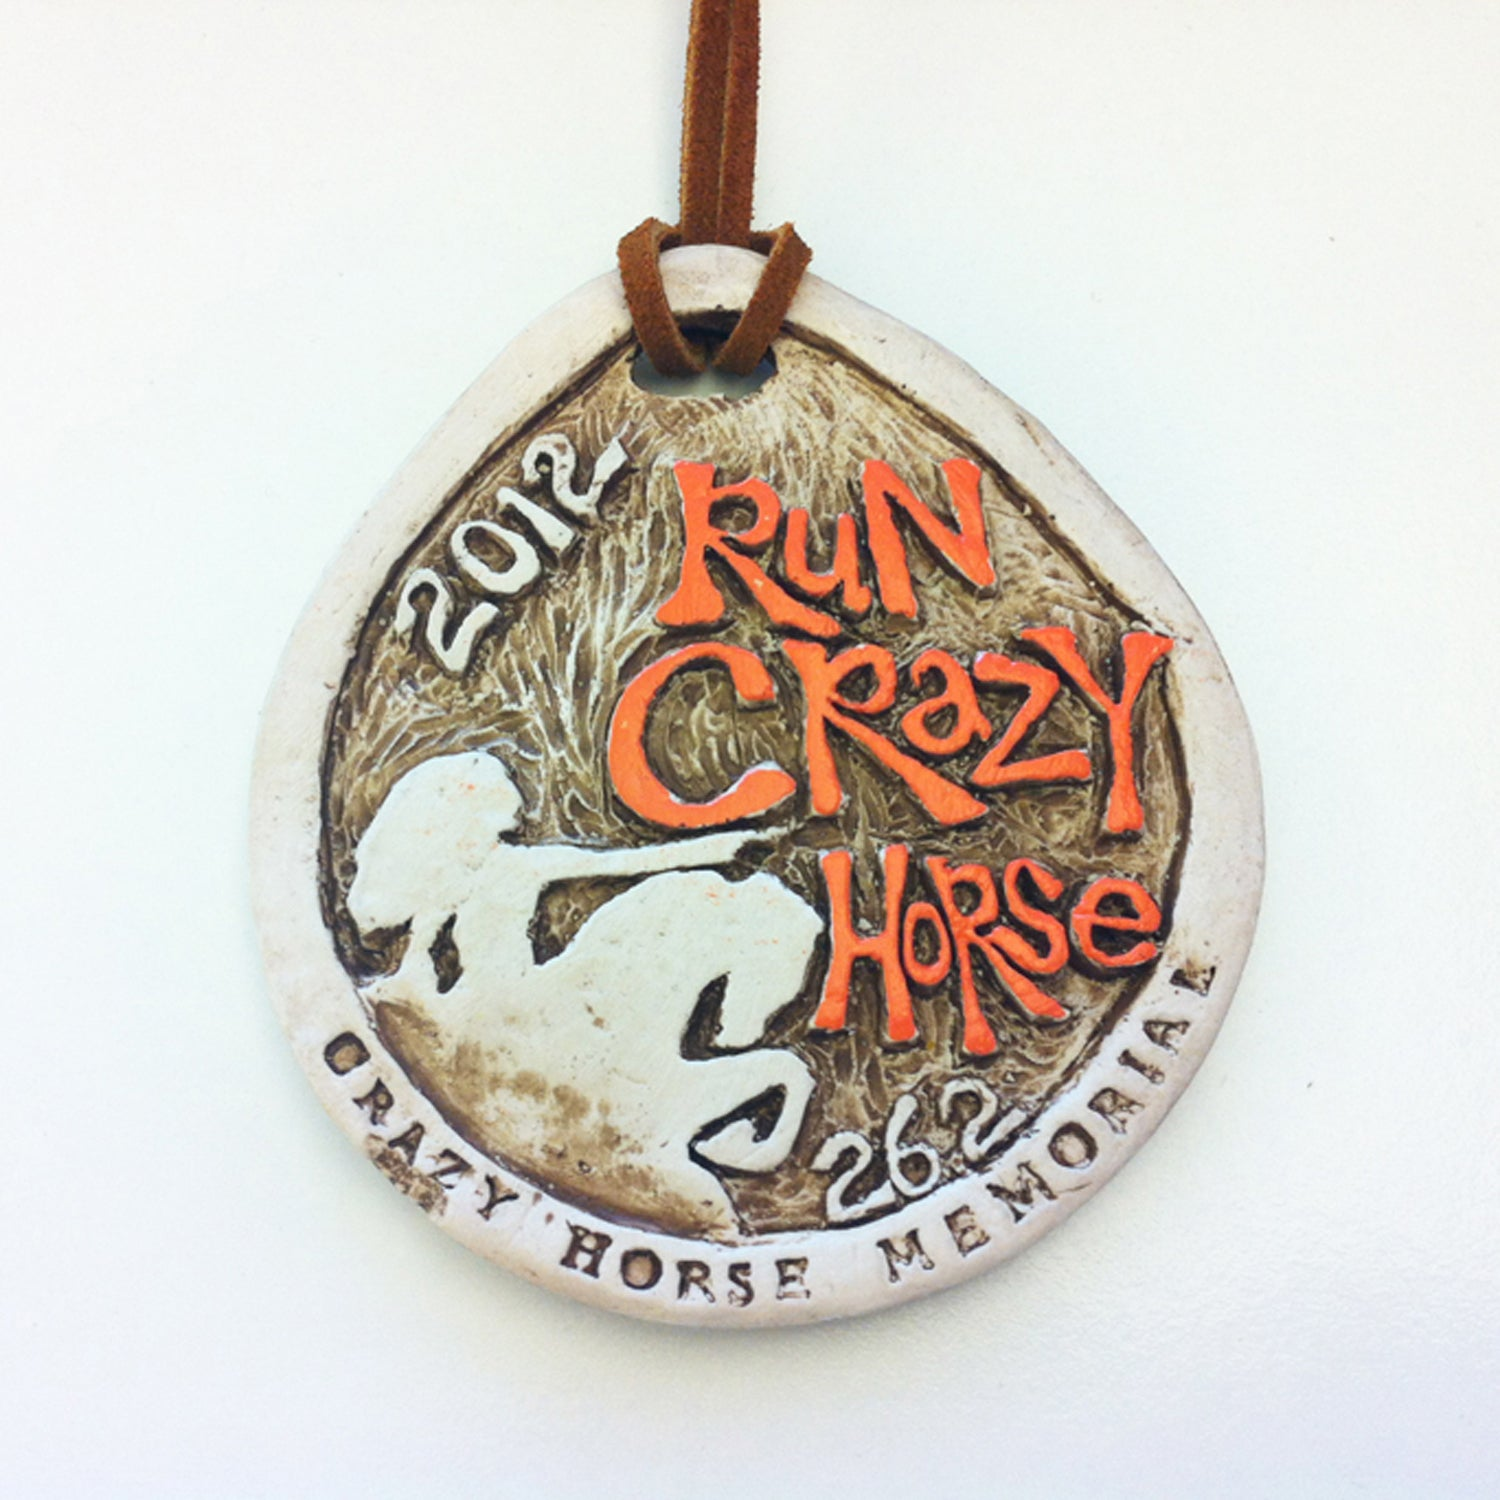 Solera: I love this medal's grit and chiseled shape, even though the design borrows very heavily from the Big Sur International Marathon medal. It features the event's titular sculpture, with Crazy Horse himself pointing forward, as if directing runners to follow the 26.2-mile path to glory. Made from clay and featuring a hand-tied leather strap, you might suspect your medal was the only one made.